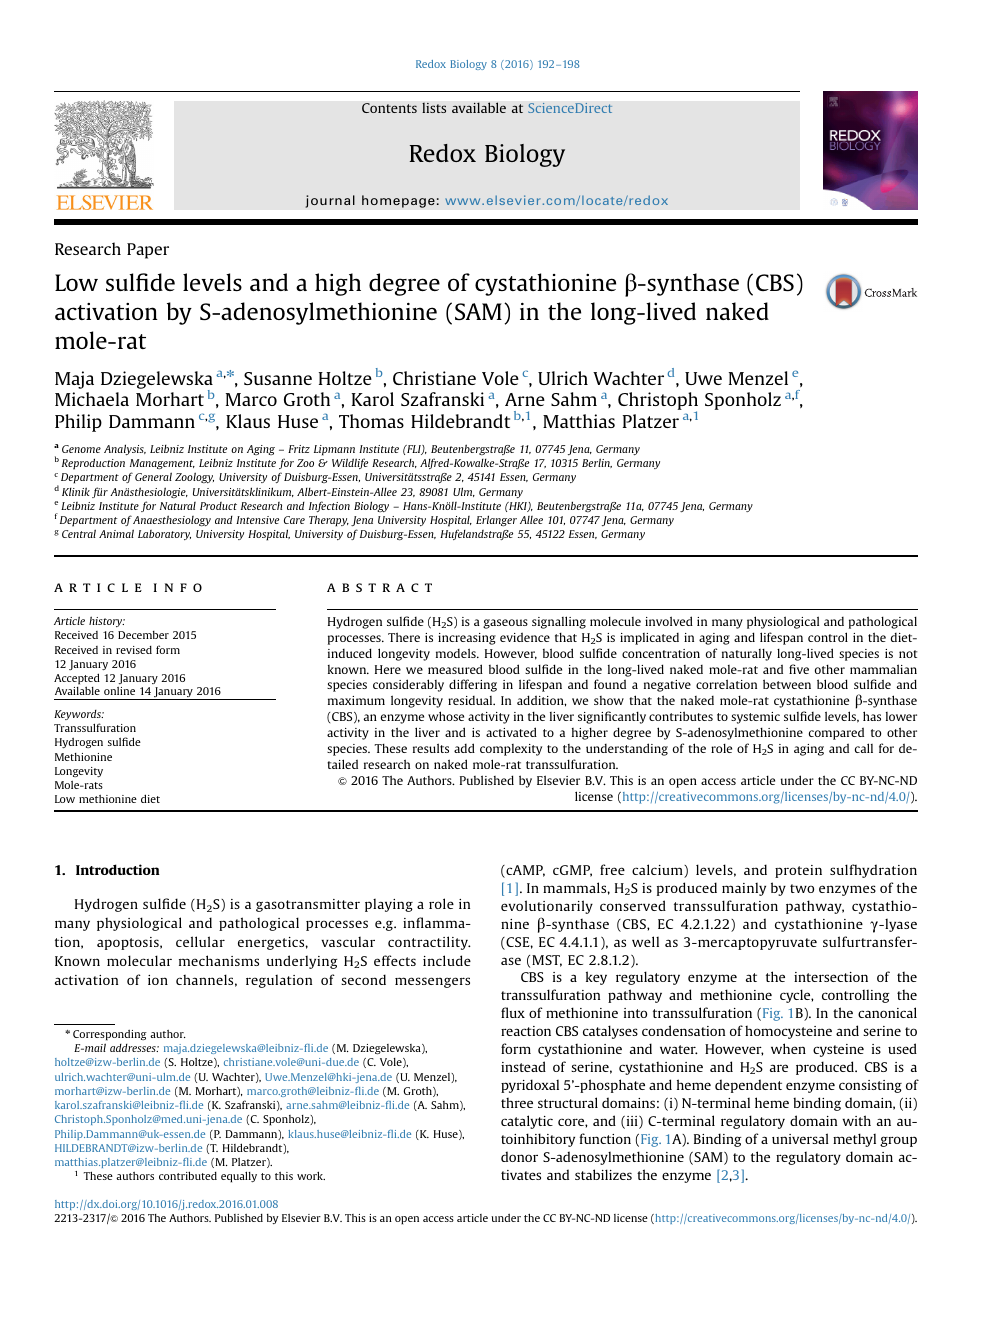 Low sulfide levels and a high degree of cystathionine β